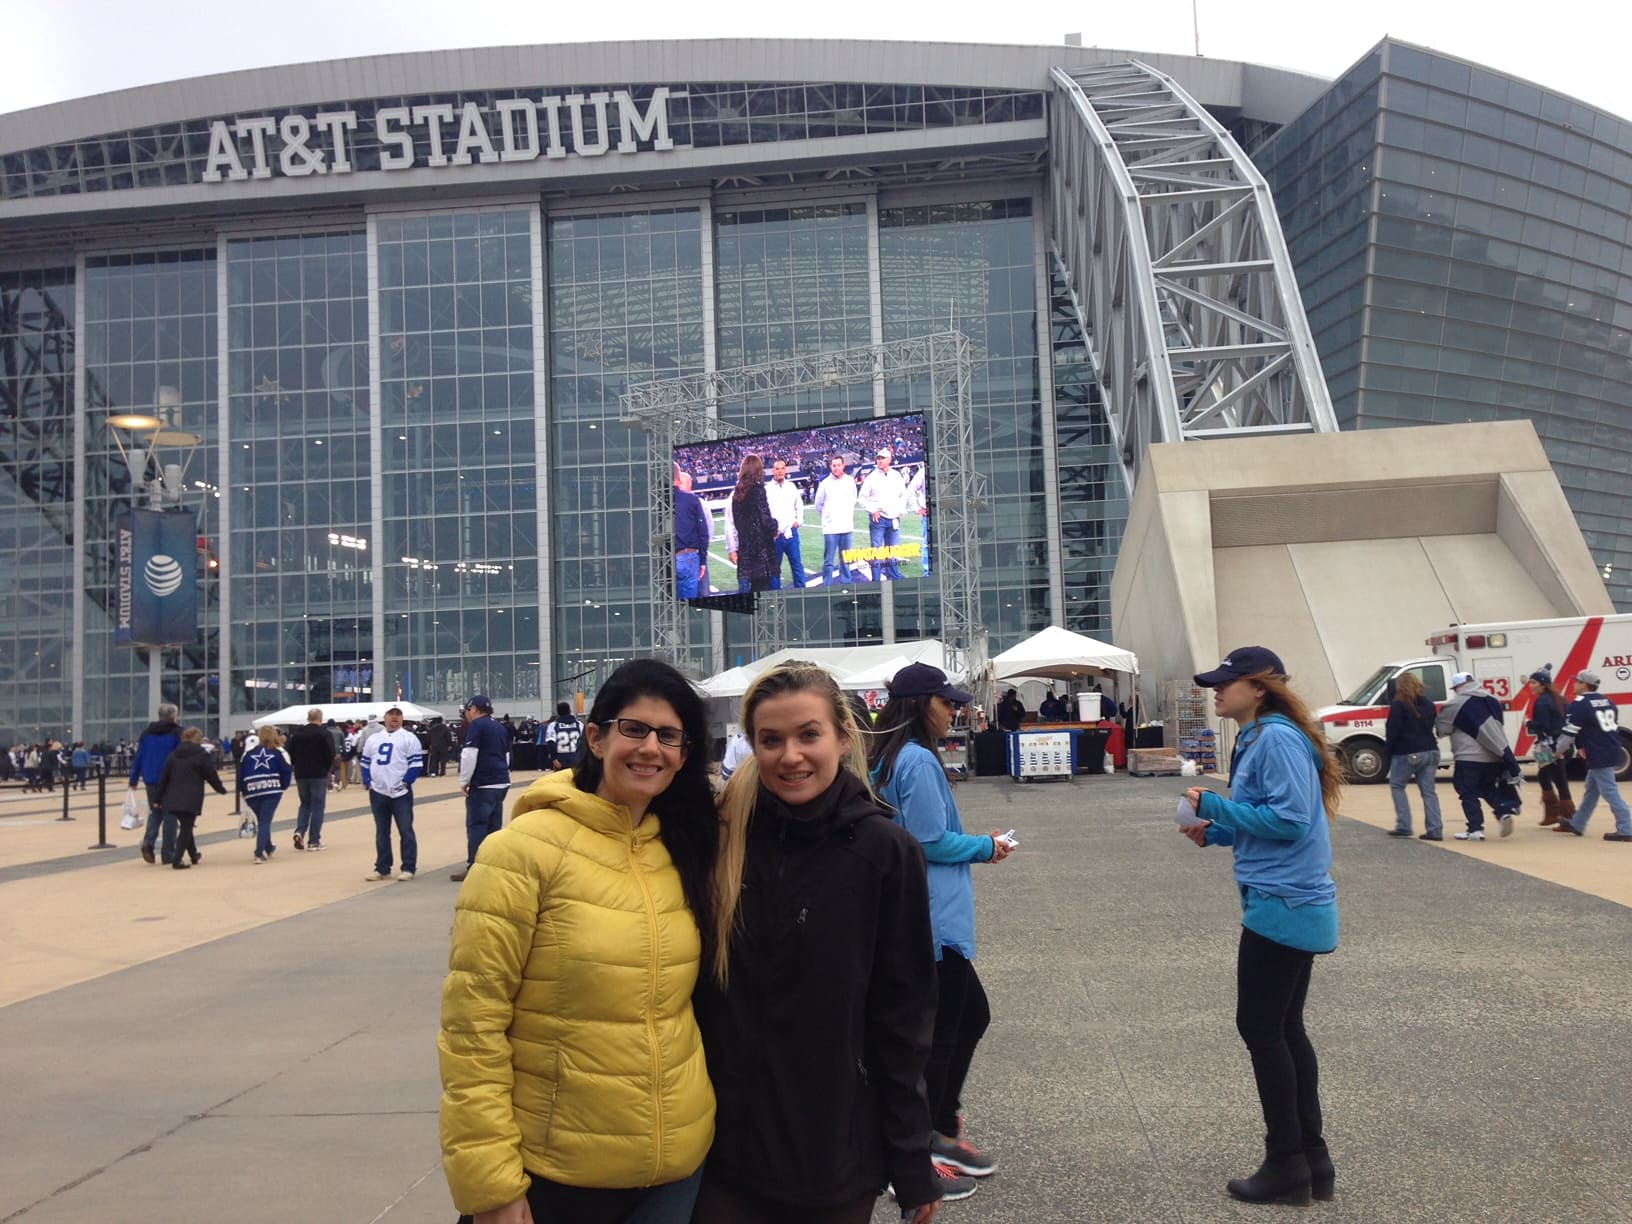 VIP Dallas Cowboys Stadium Tour Review